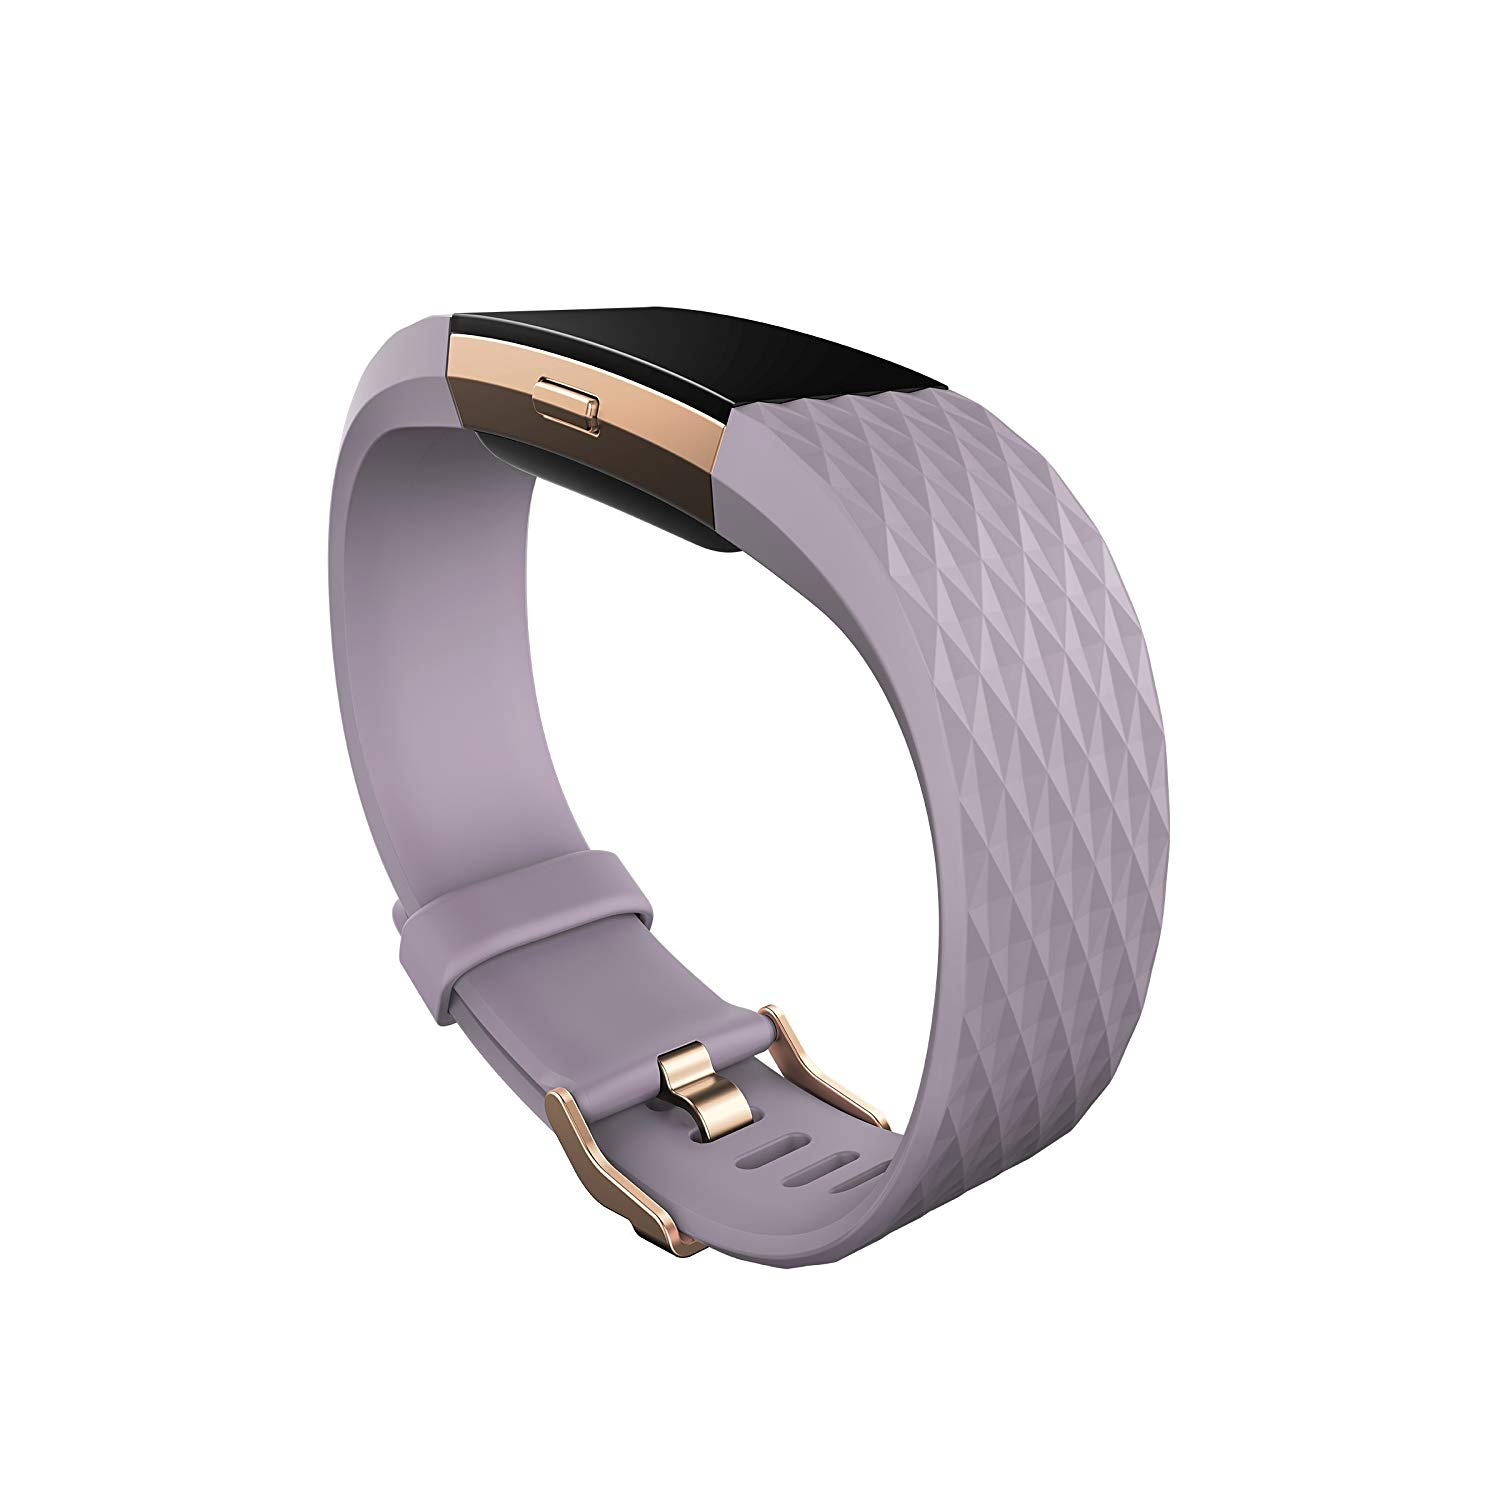 Fitbit Charge 2 HR: $30 OFF ALL MODELS